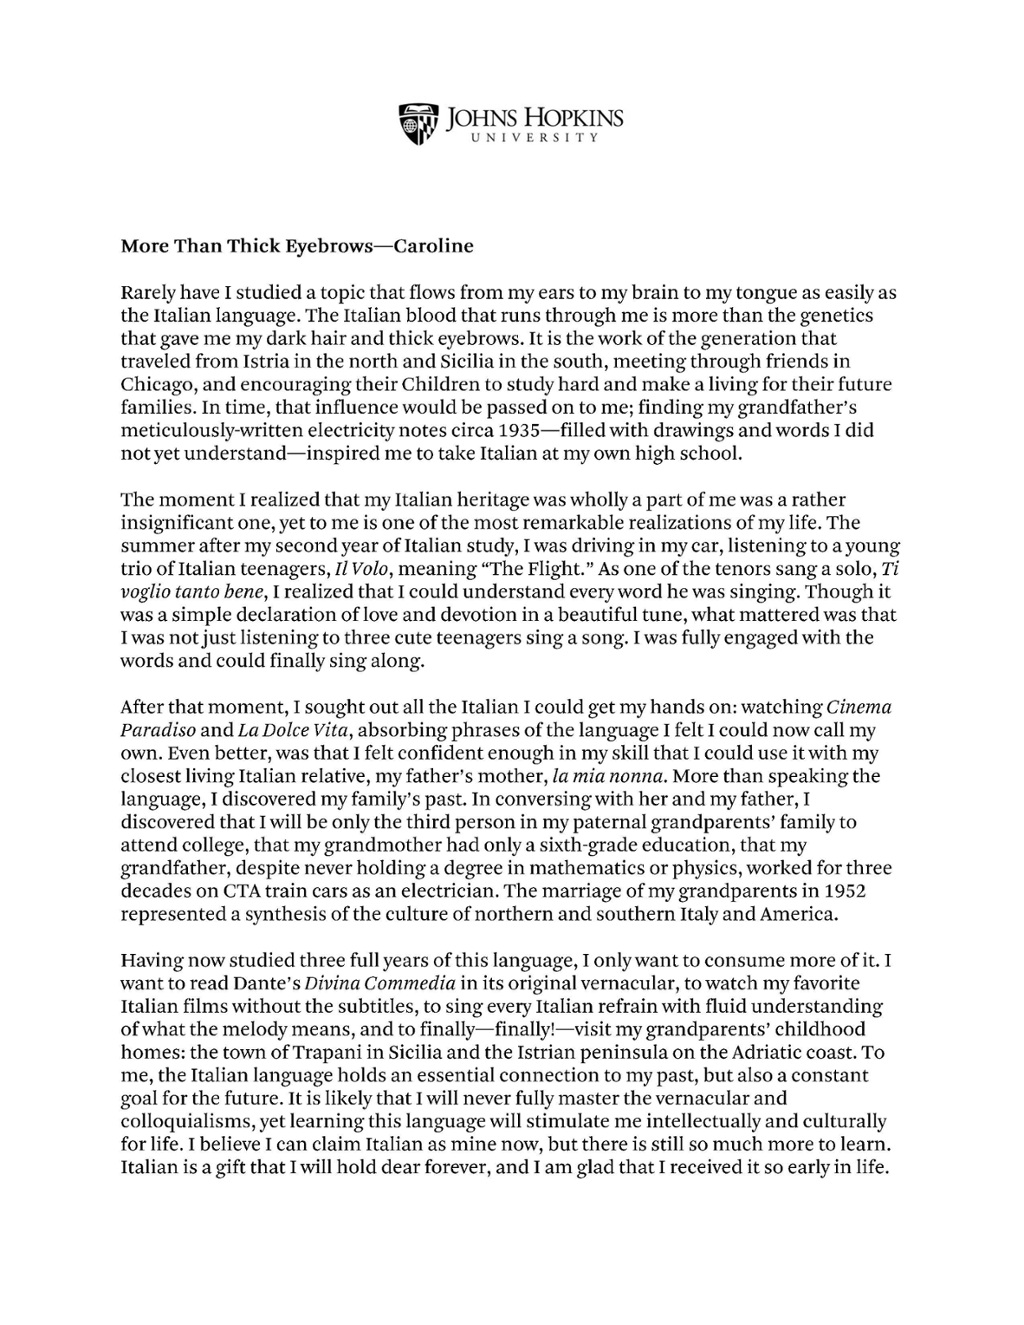 senior essay examples Using real sample college essays that worked will give you a great idea of what colleges look for learn from great examples when senior year arrived, college meetings began, and my counselor asked me what i wanted to do for a career, i didn't say emperor of the world instead, i told him i wanted to.